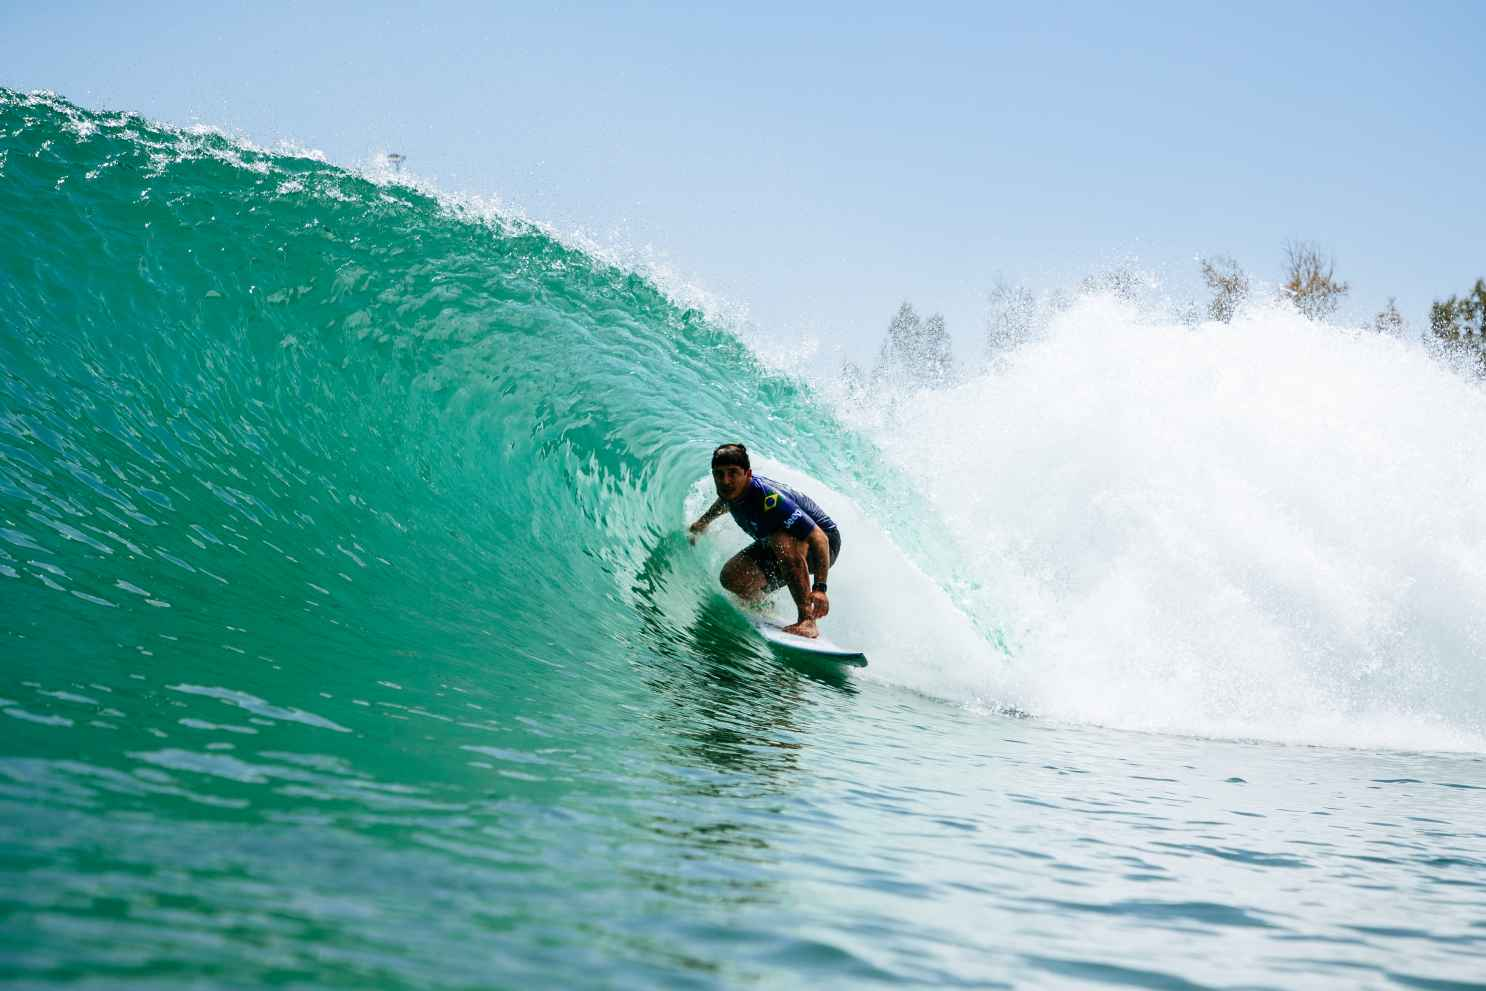 surf30 surf ranch pro 2021 wsl surf Crisanto P Ranch21 THF2088